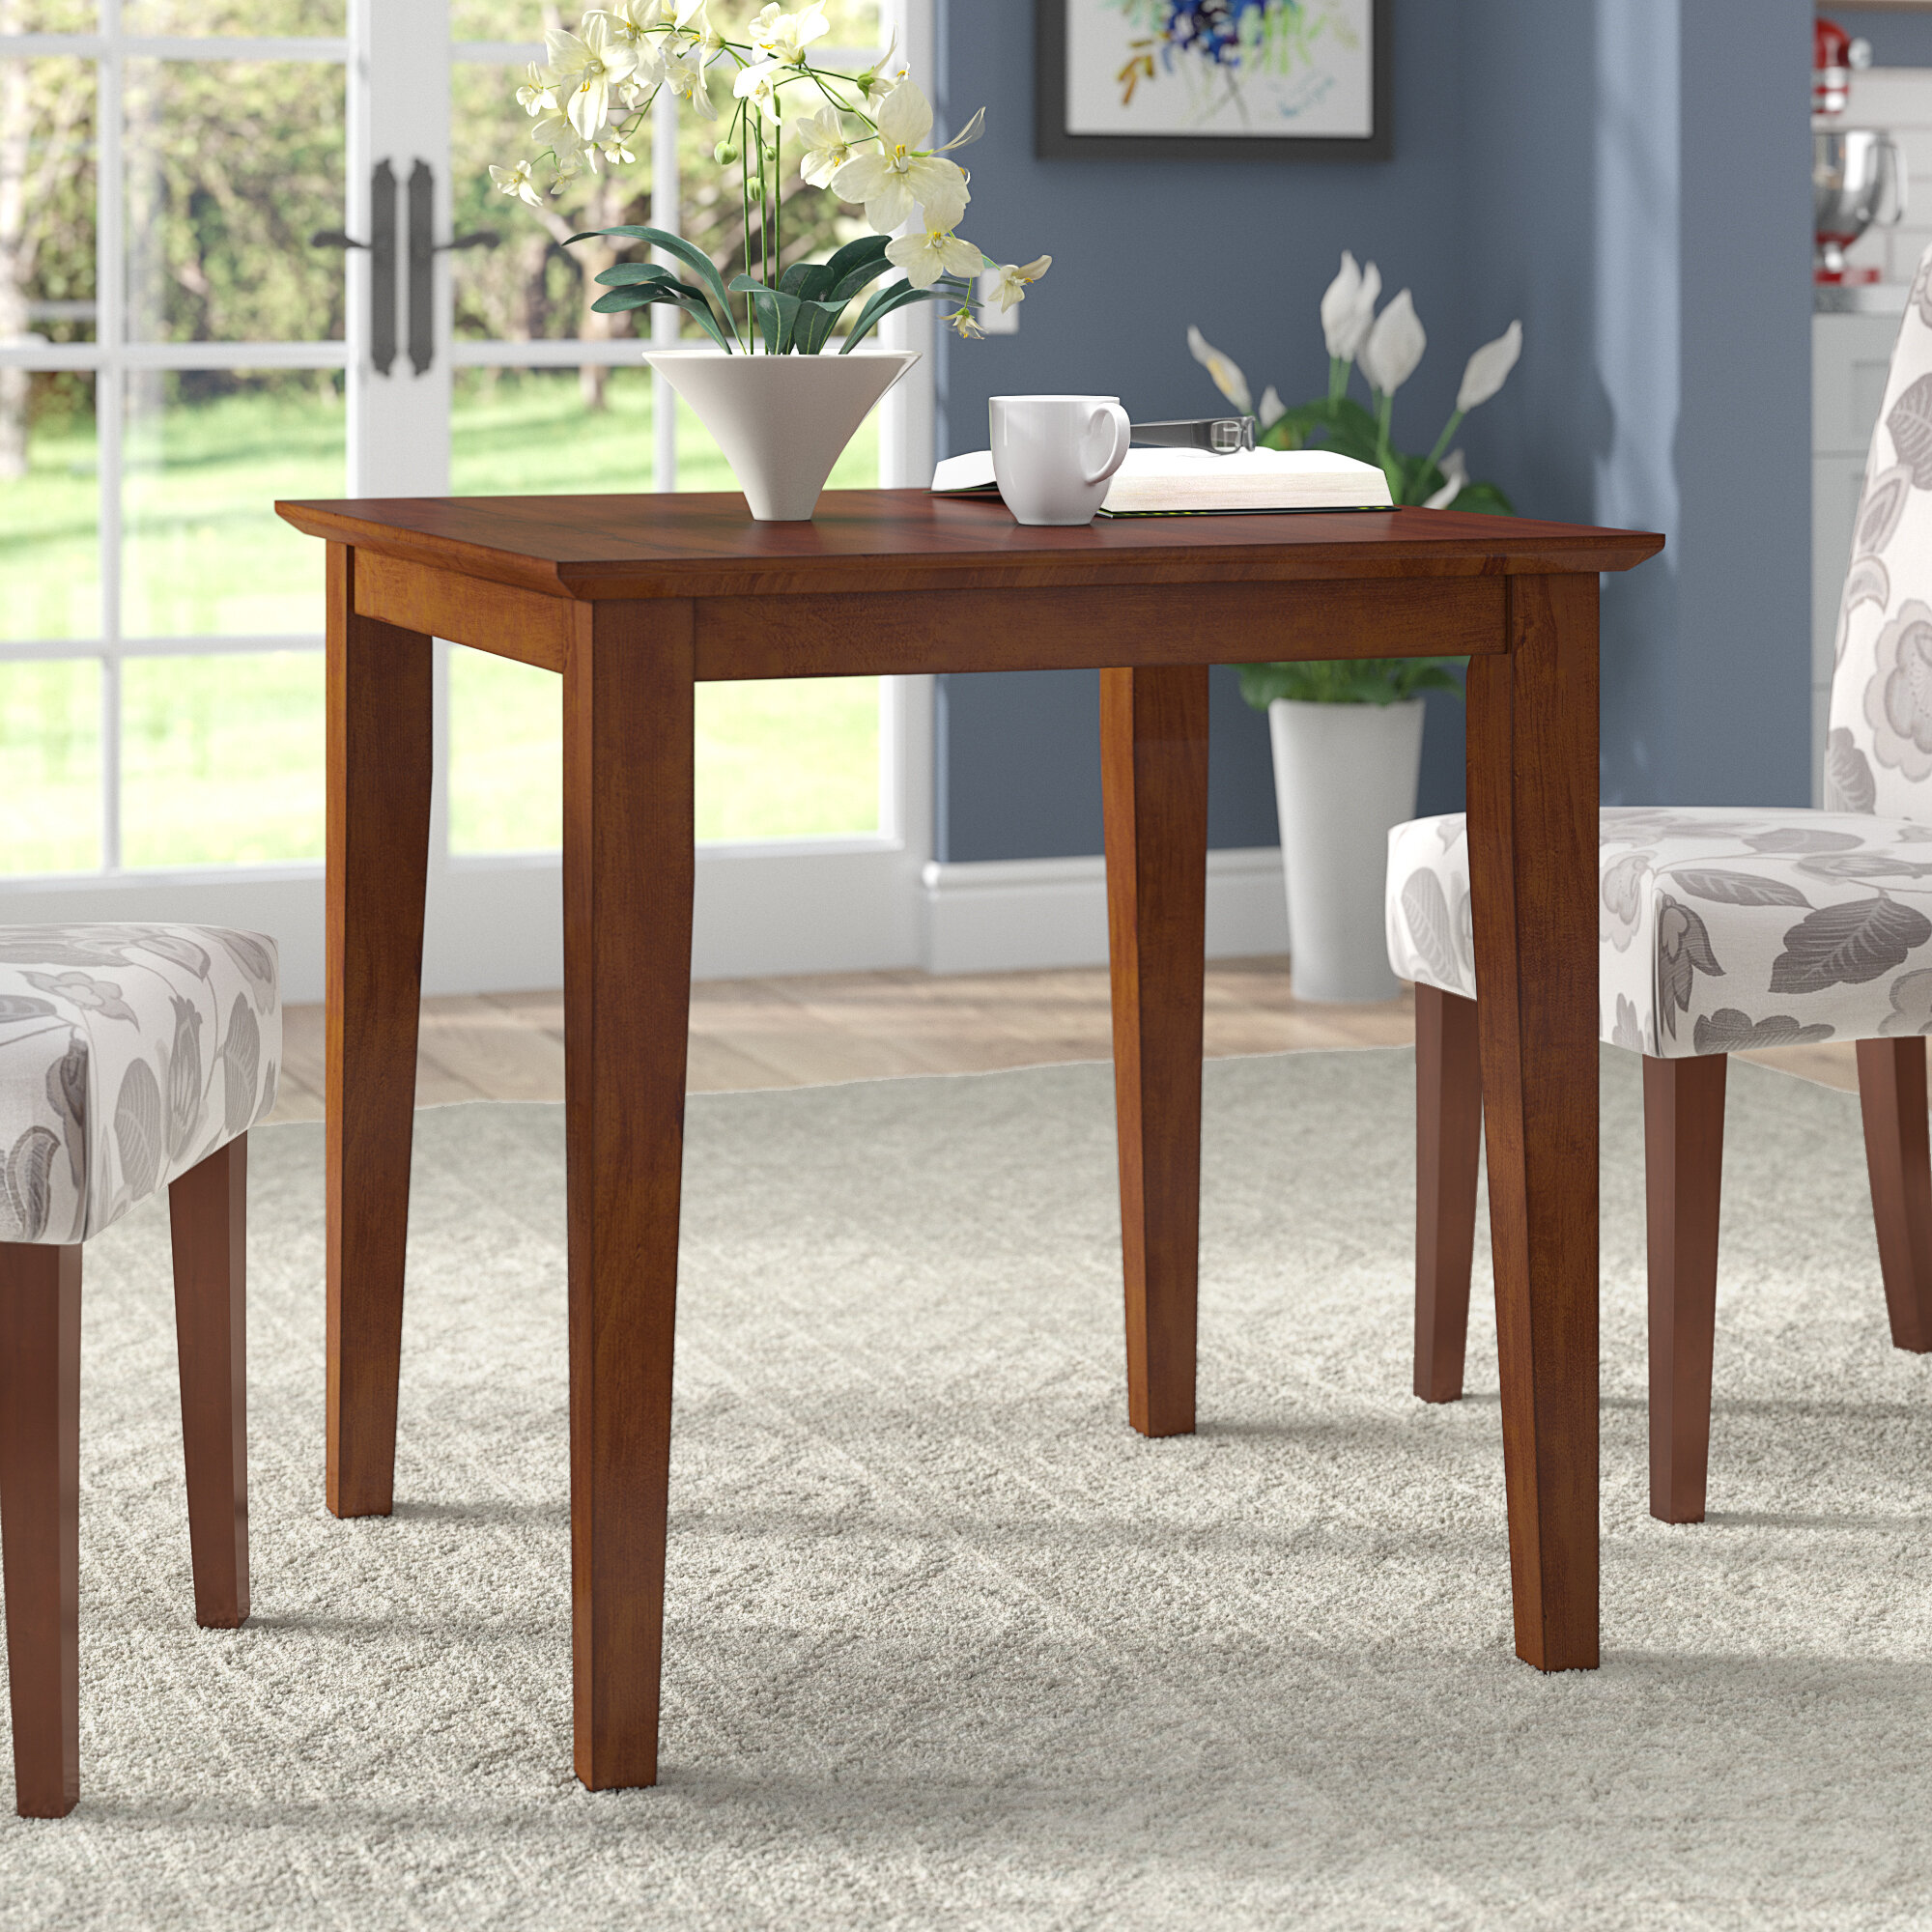 Rubberwood Kitchen Dining Tables Free Shipping Over 35 Wayfair